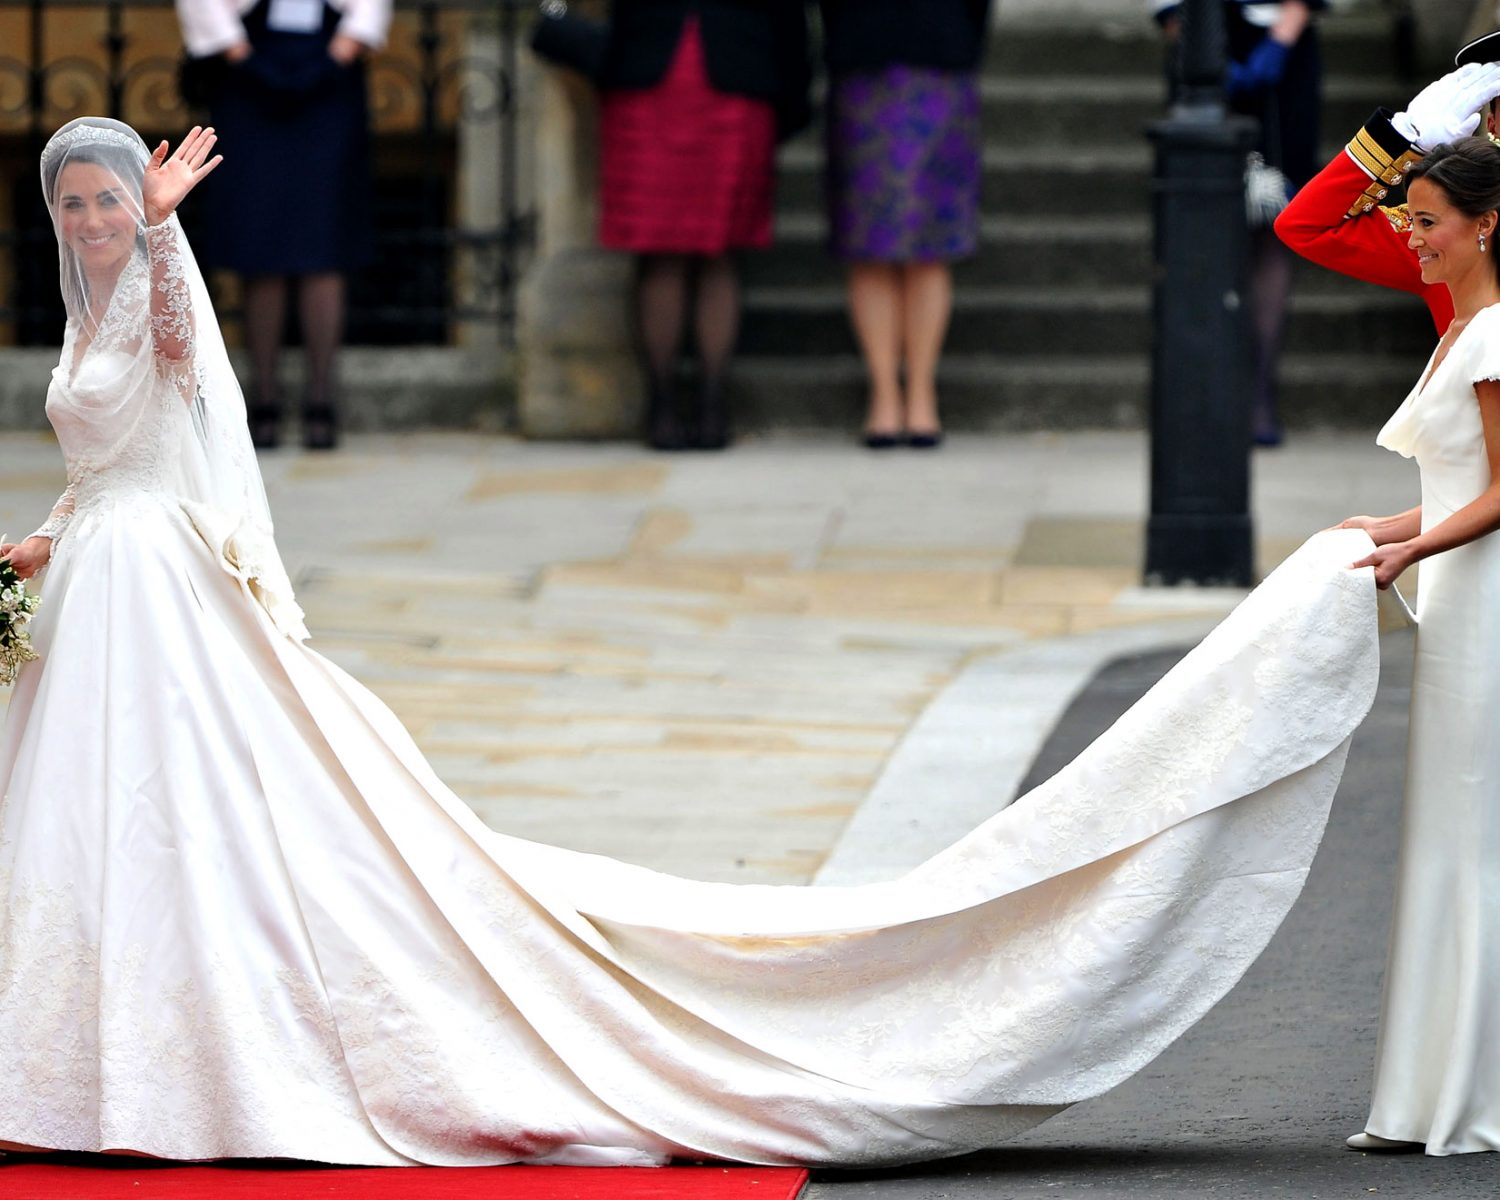 Kate Middletons Wedding Dresses.Kate Middleton Had A Second Wedding Dress And More Facts